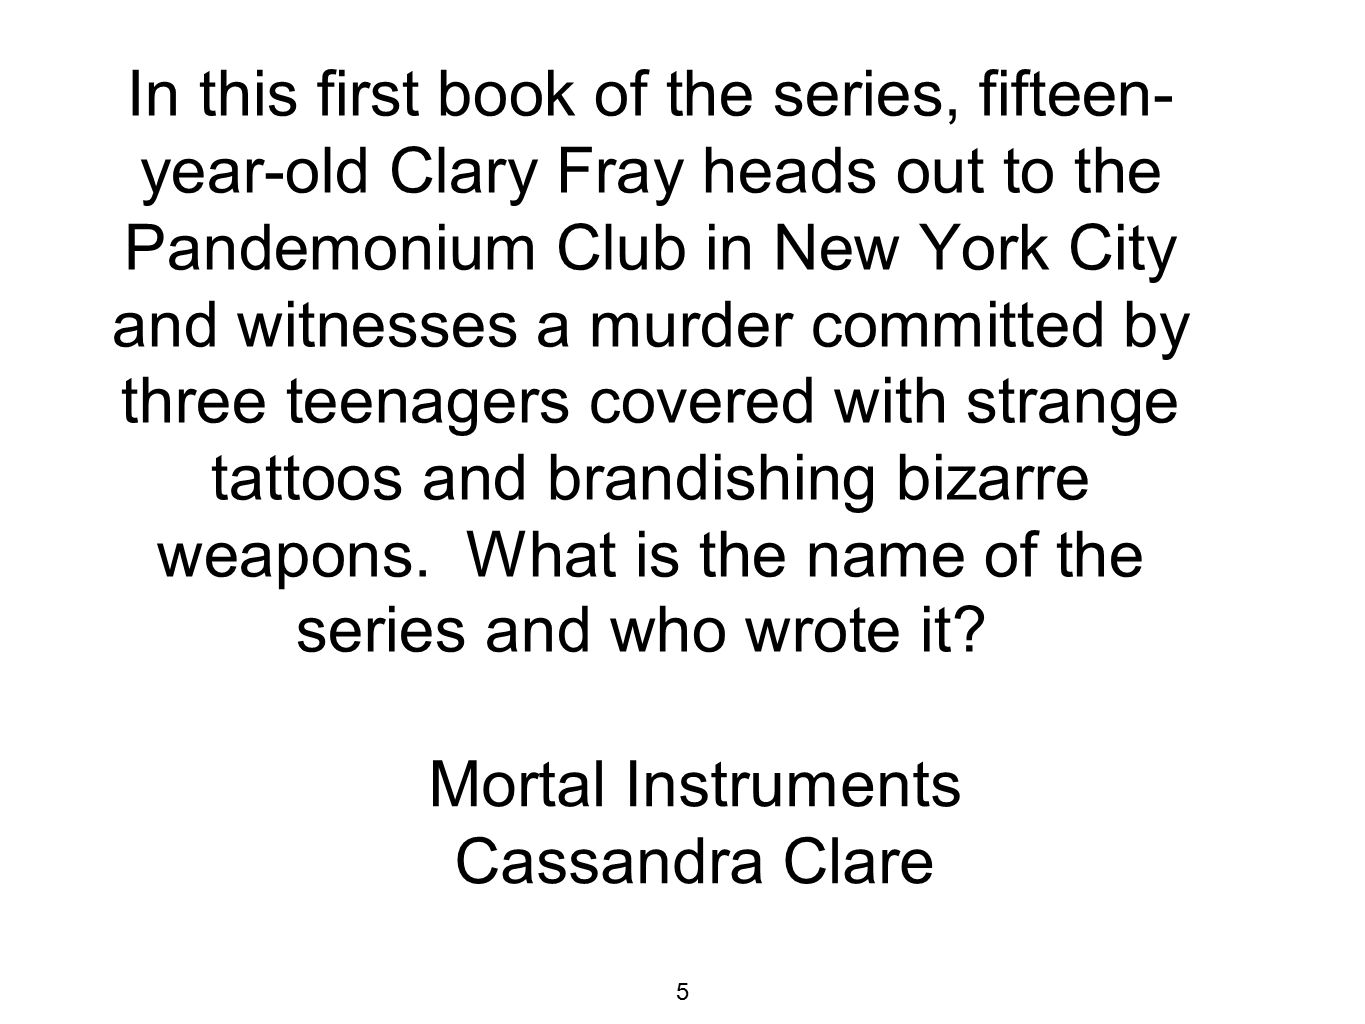 In this first book of the series, fifteen- year-old Clary Fray heads out to the Pandemonium Club in New York City and witnesses a murder committed by three teenagers covered with strange tattoos and brandishing bizarre weapons.